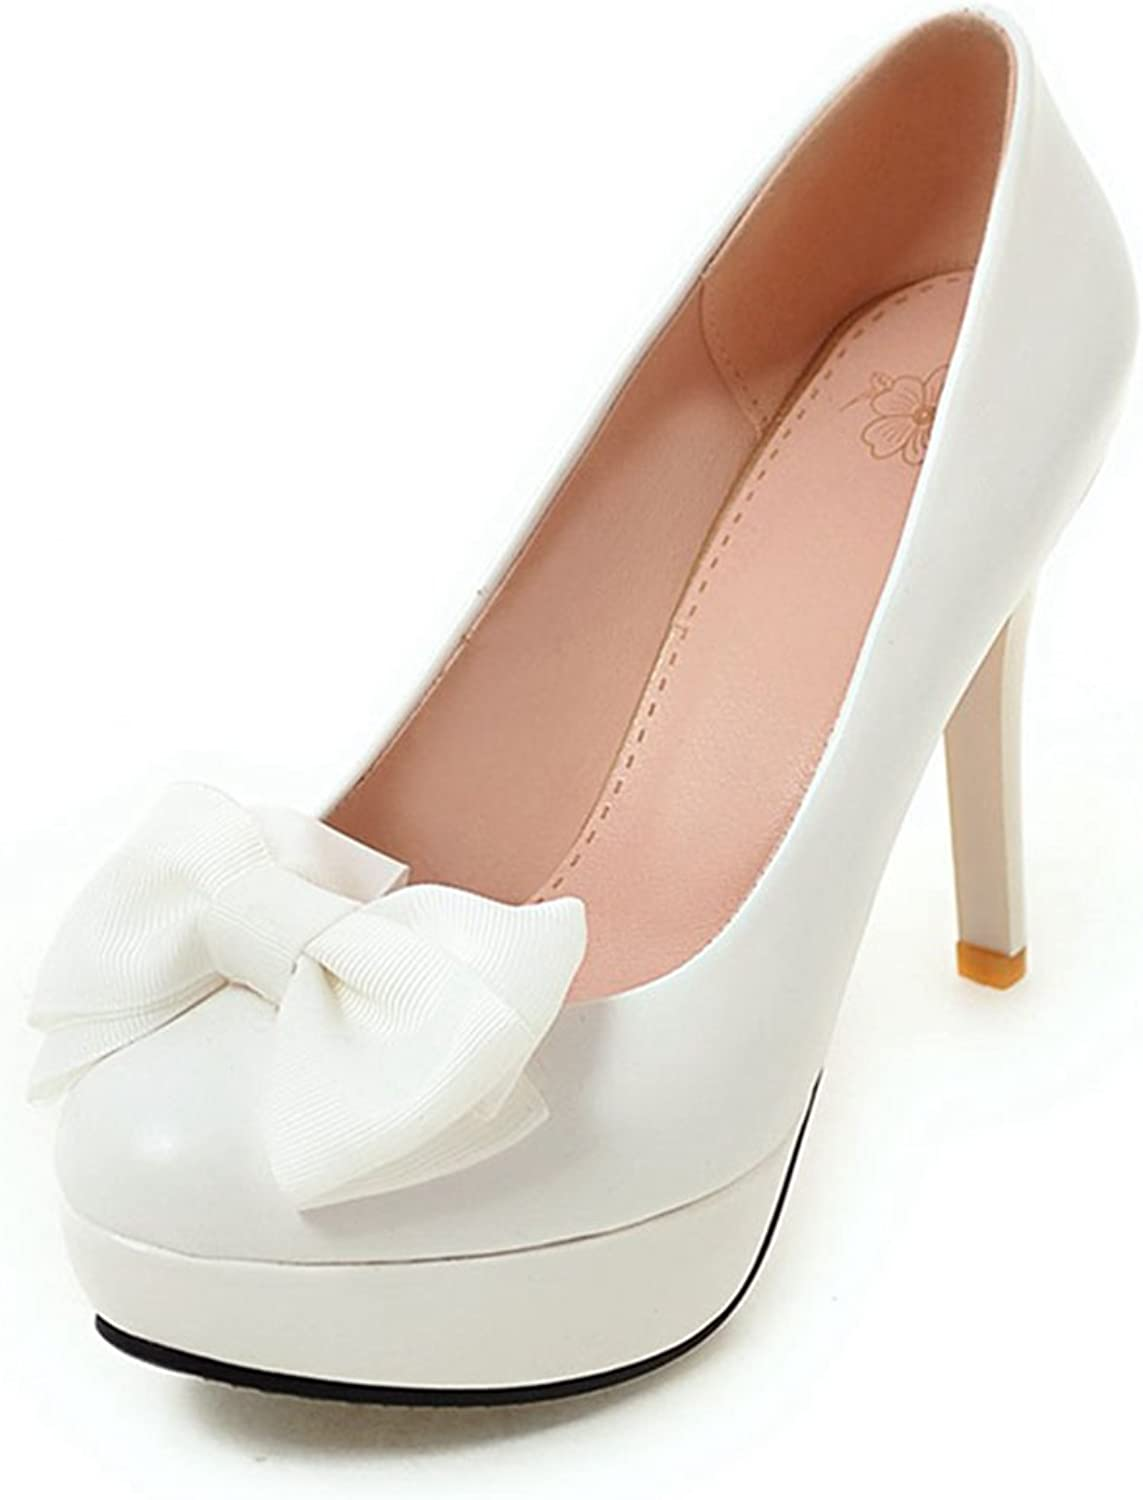 York Zhu Women Pumps, Elegant Candy color Butterfly-Knot Round Toe Spike Heel shoes